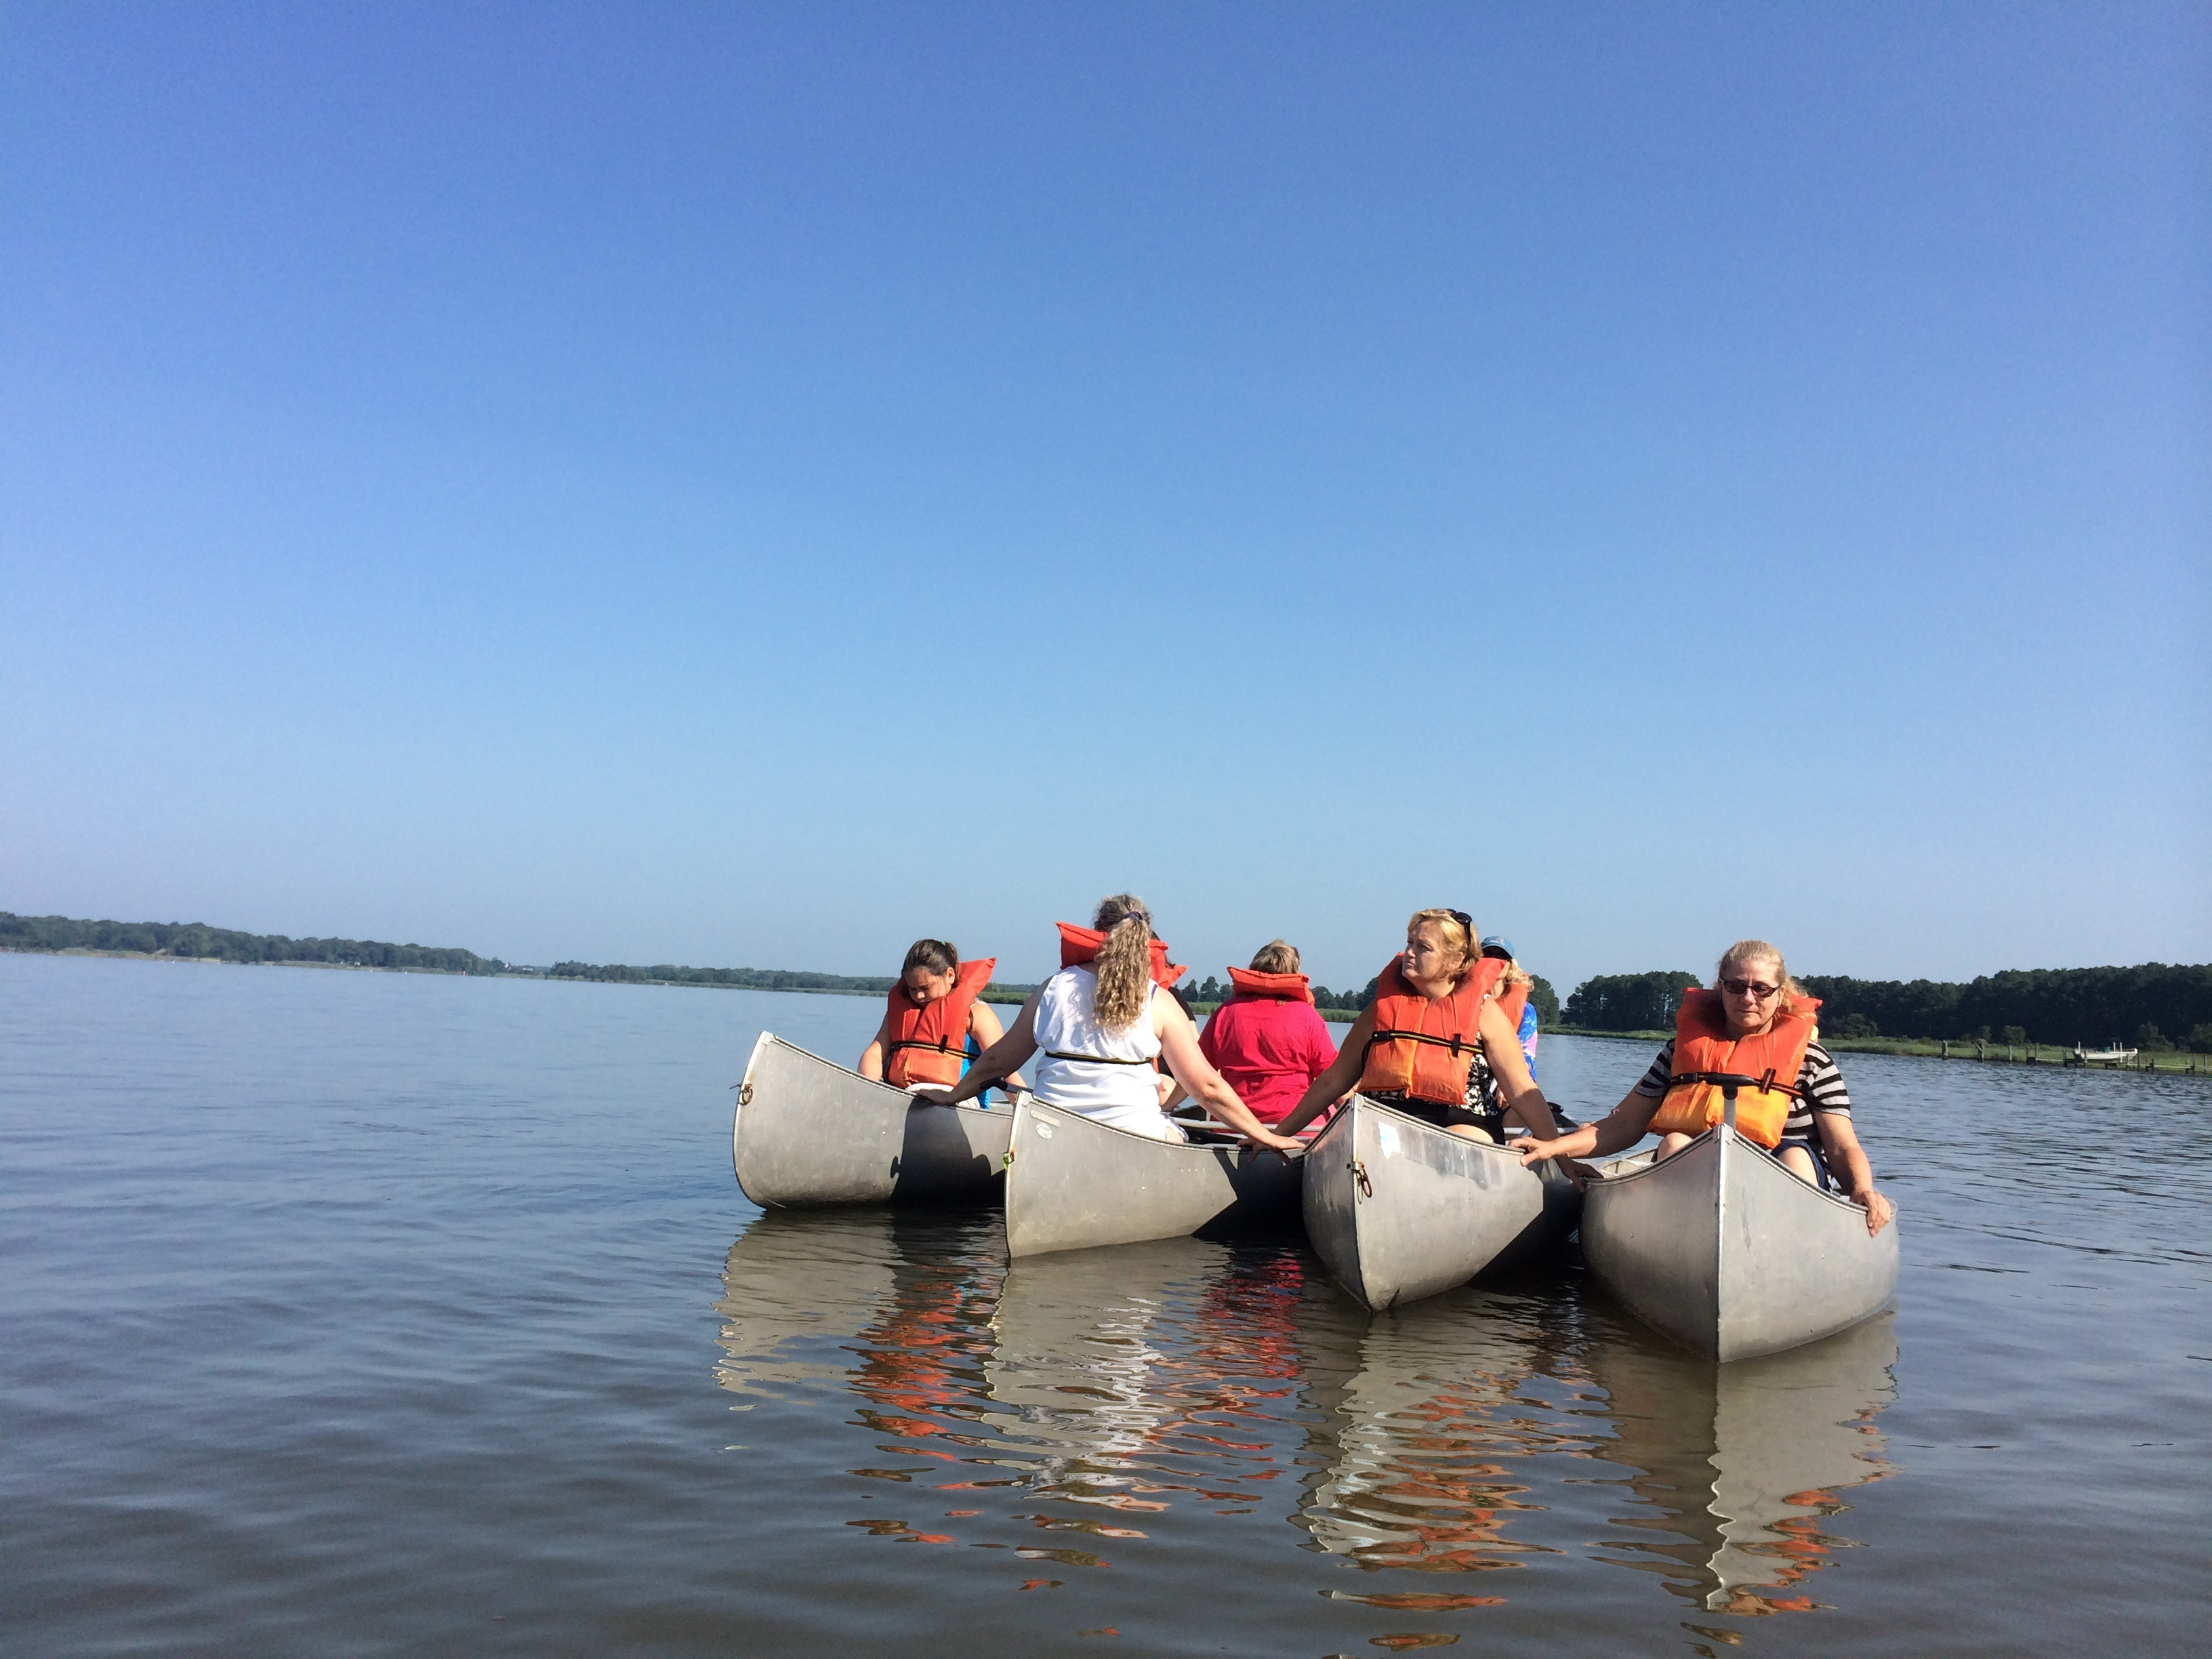 Canoeing on the Chester River at the Pecometh Summer Silent Retreat